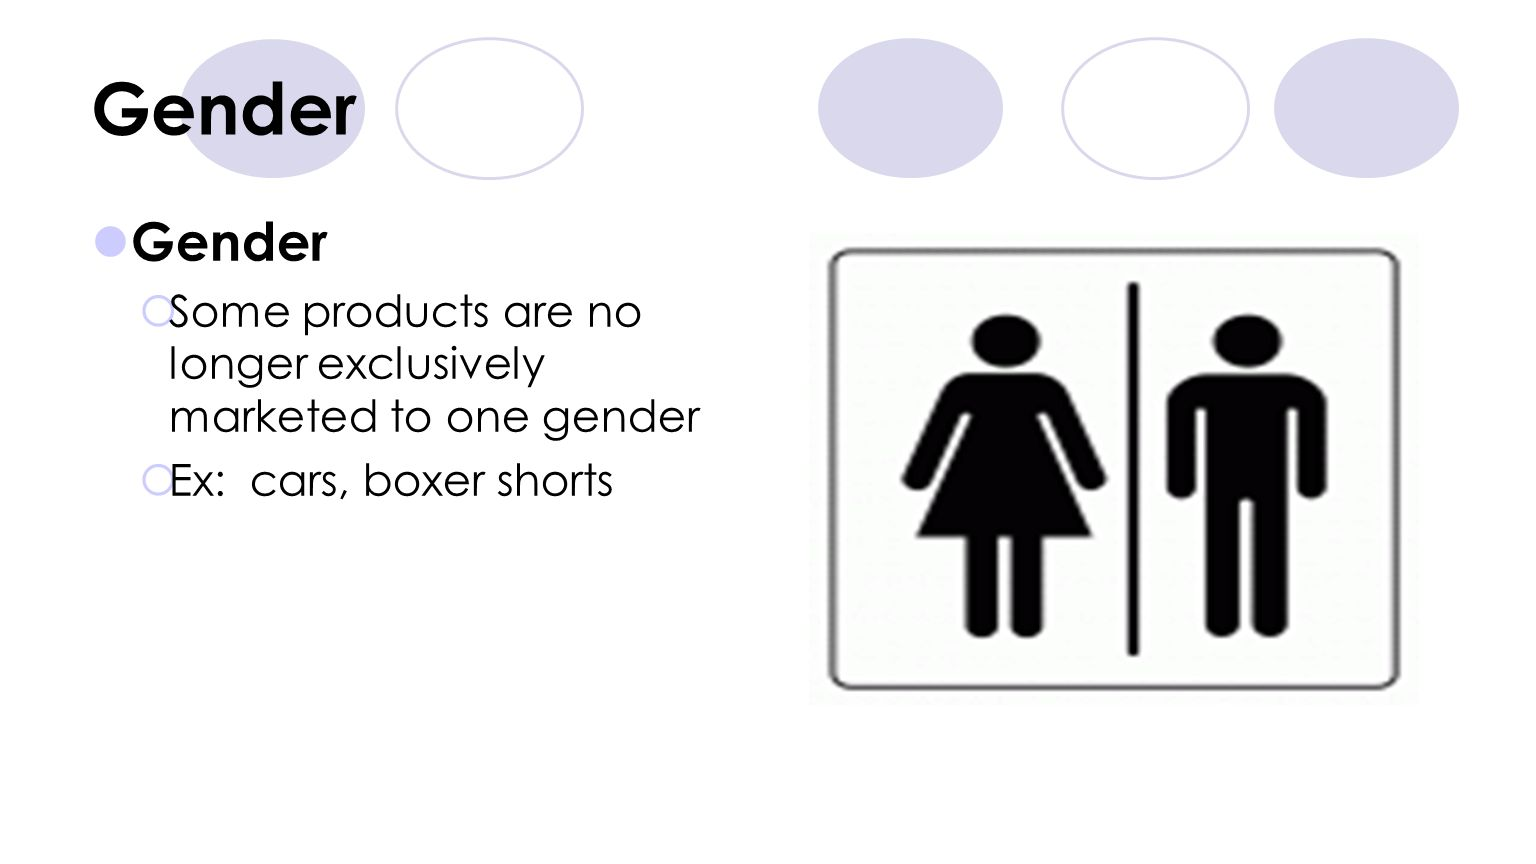 Gender Gender. Some products are no longer exclusively marketed to one gender.